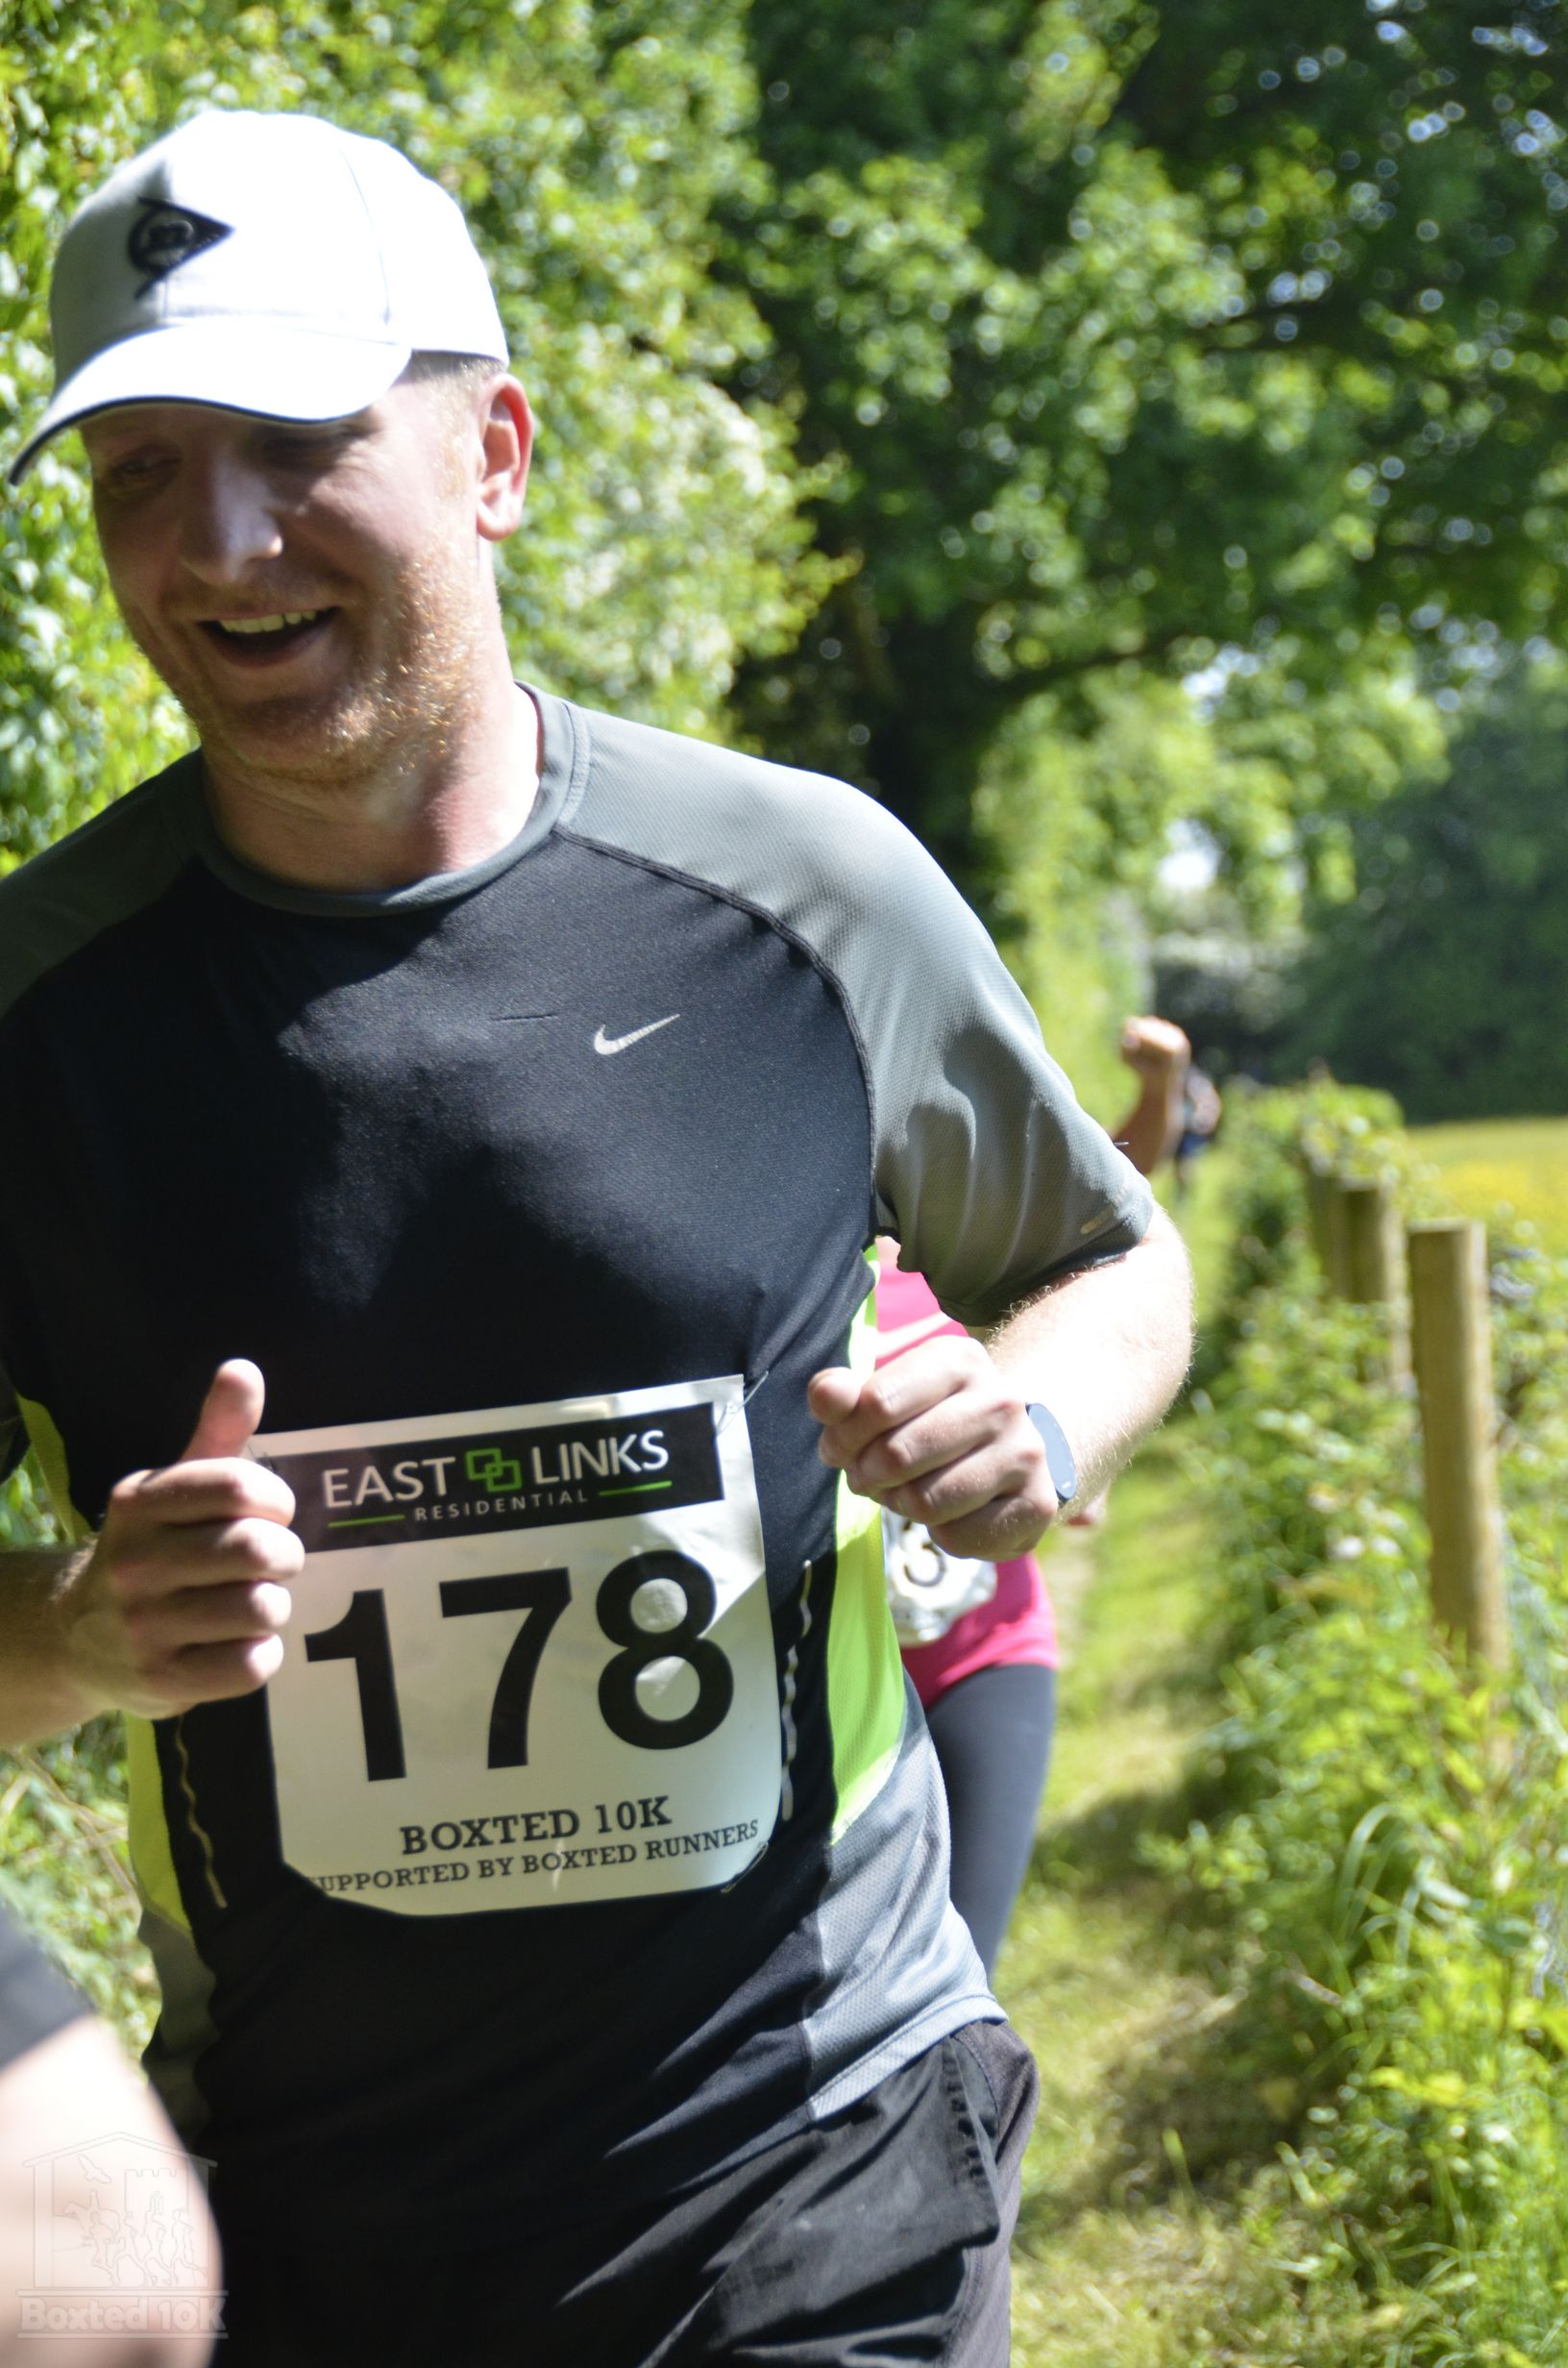 Boxted10k-00299